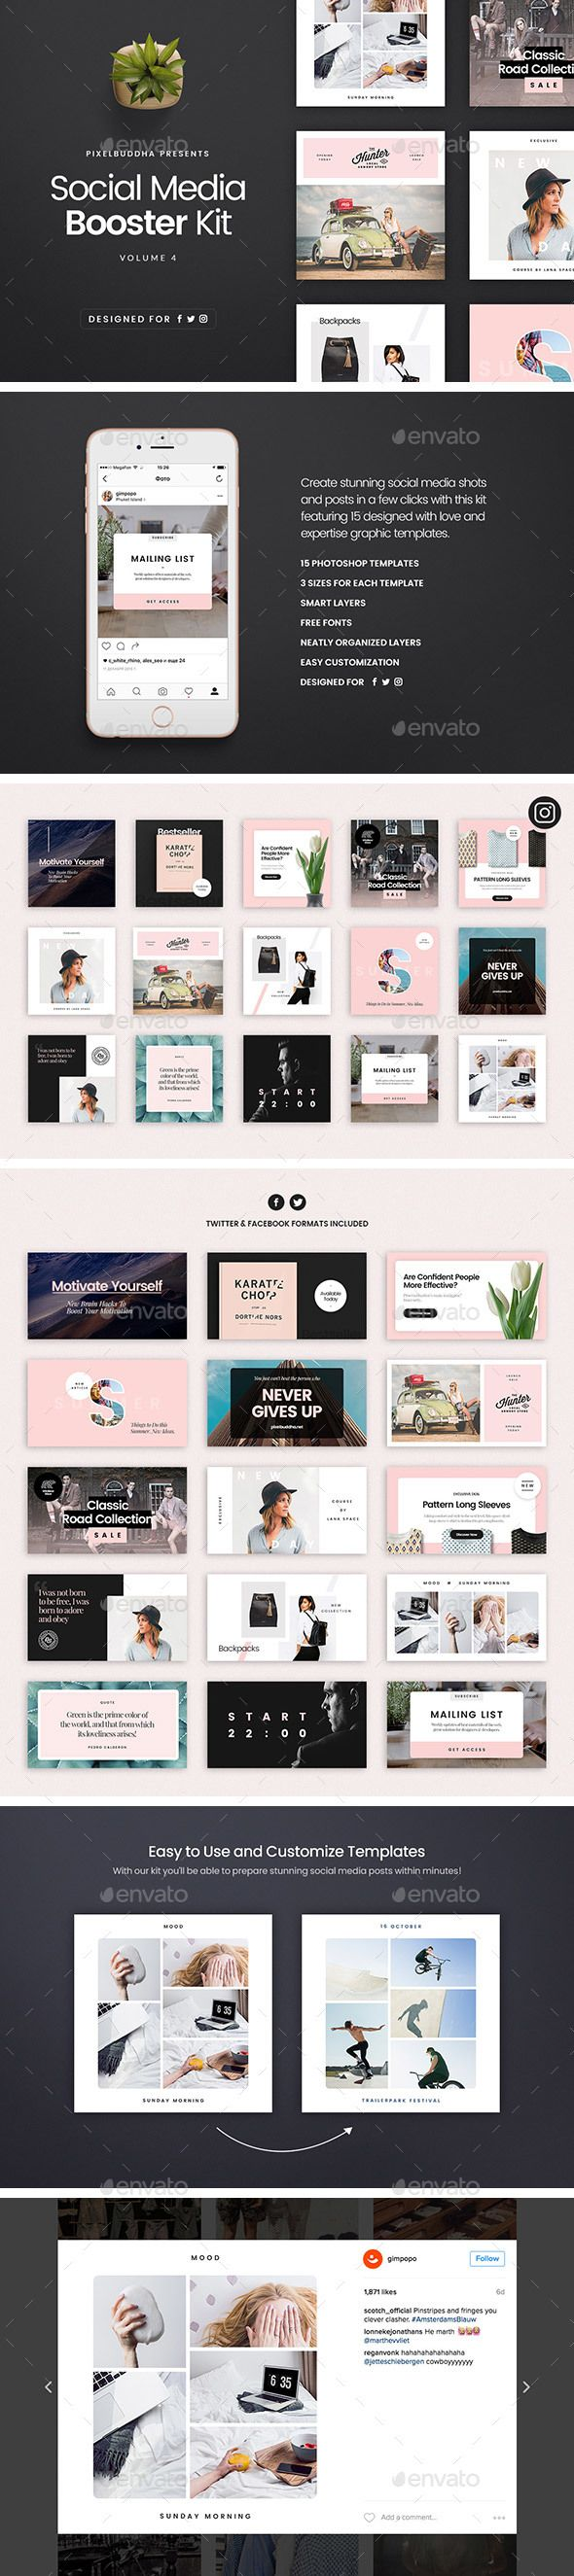 38 best Web Design images on Pinterest | Social media, Graphics and ...